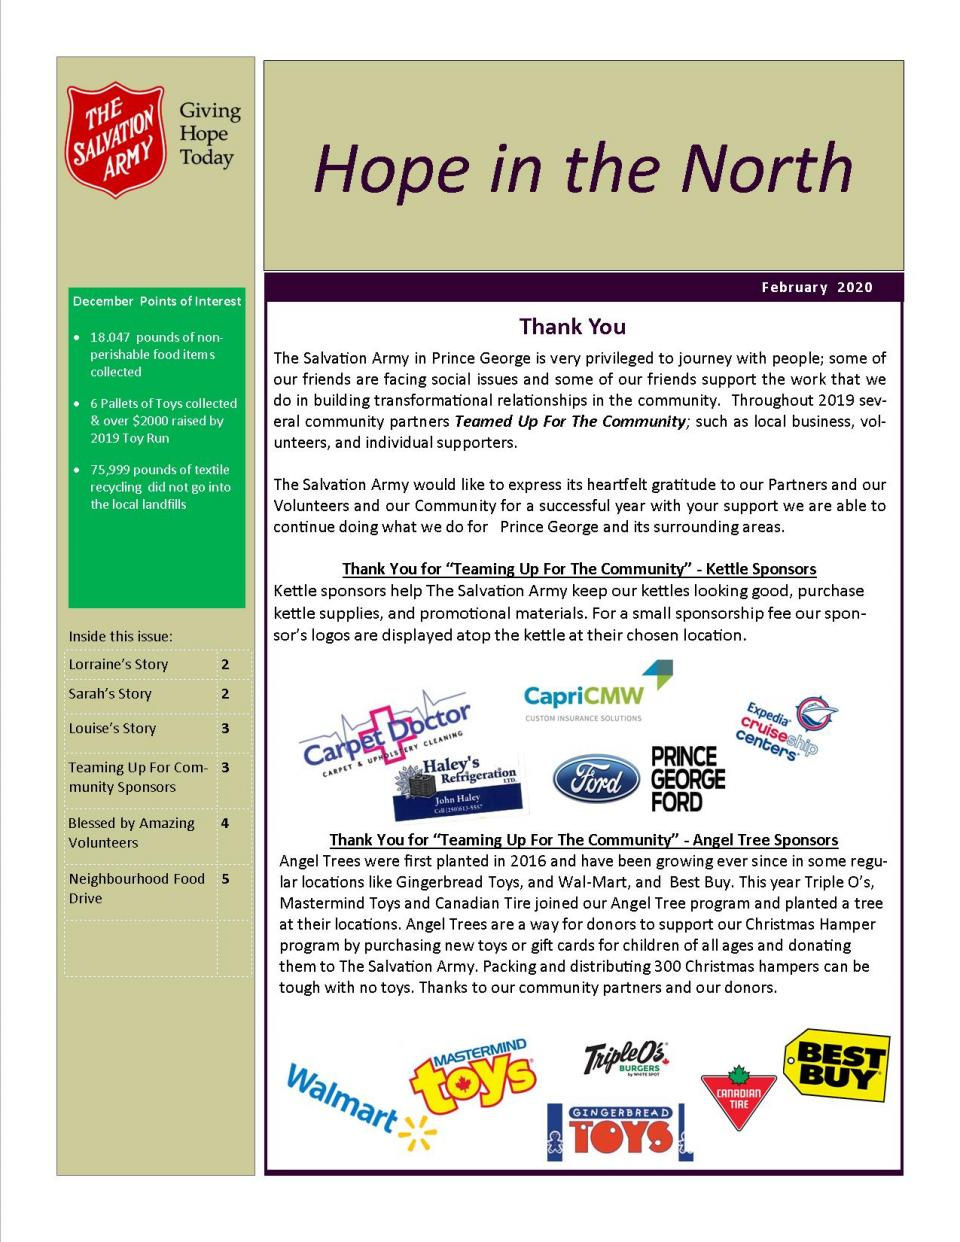 Hope in the North - February 2020